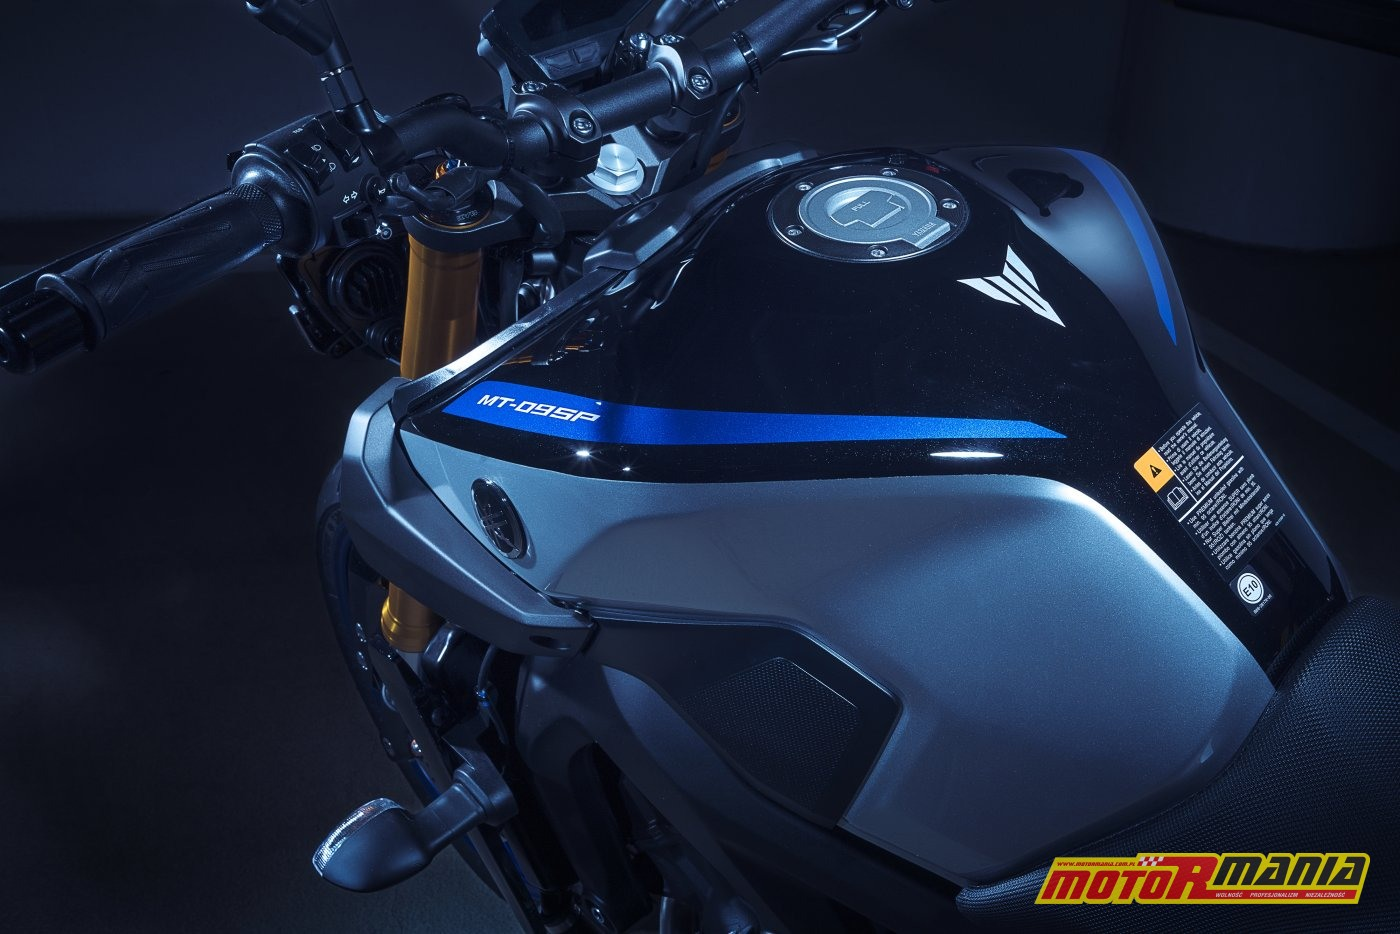 Yamaha MT-09 SP 2018 (12)